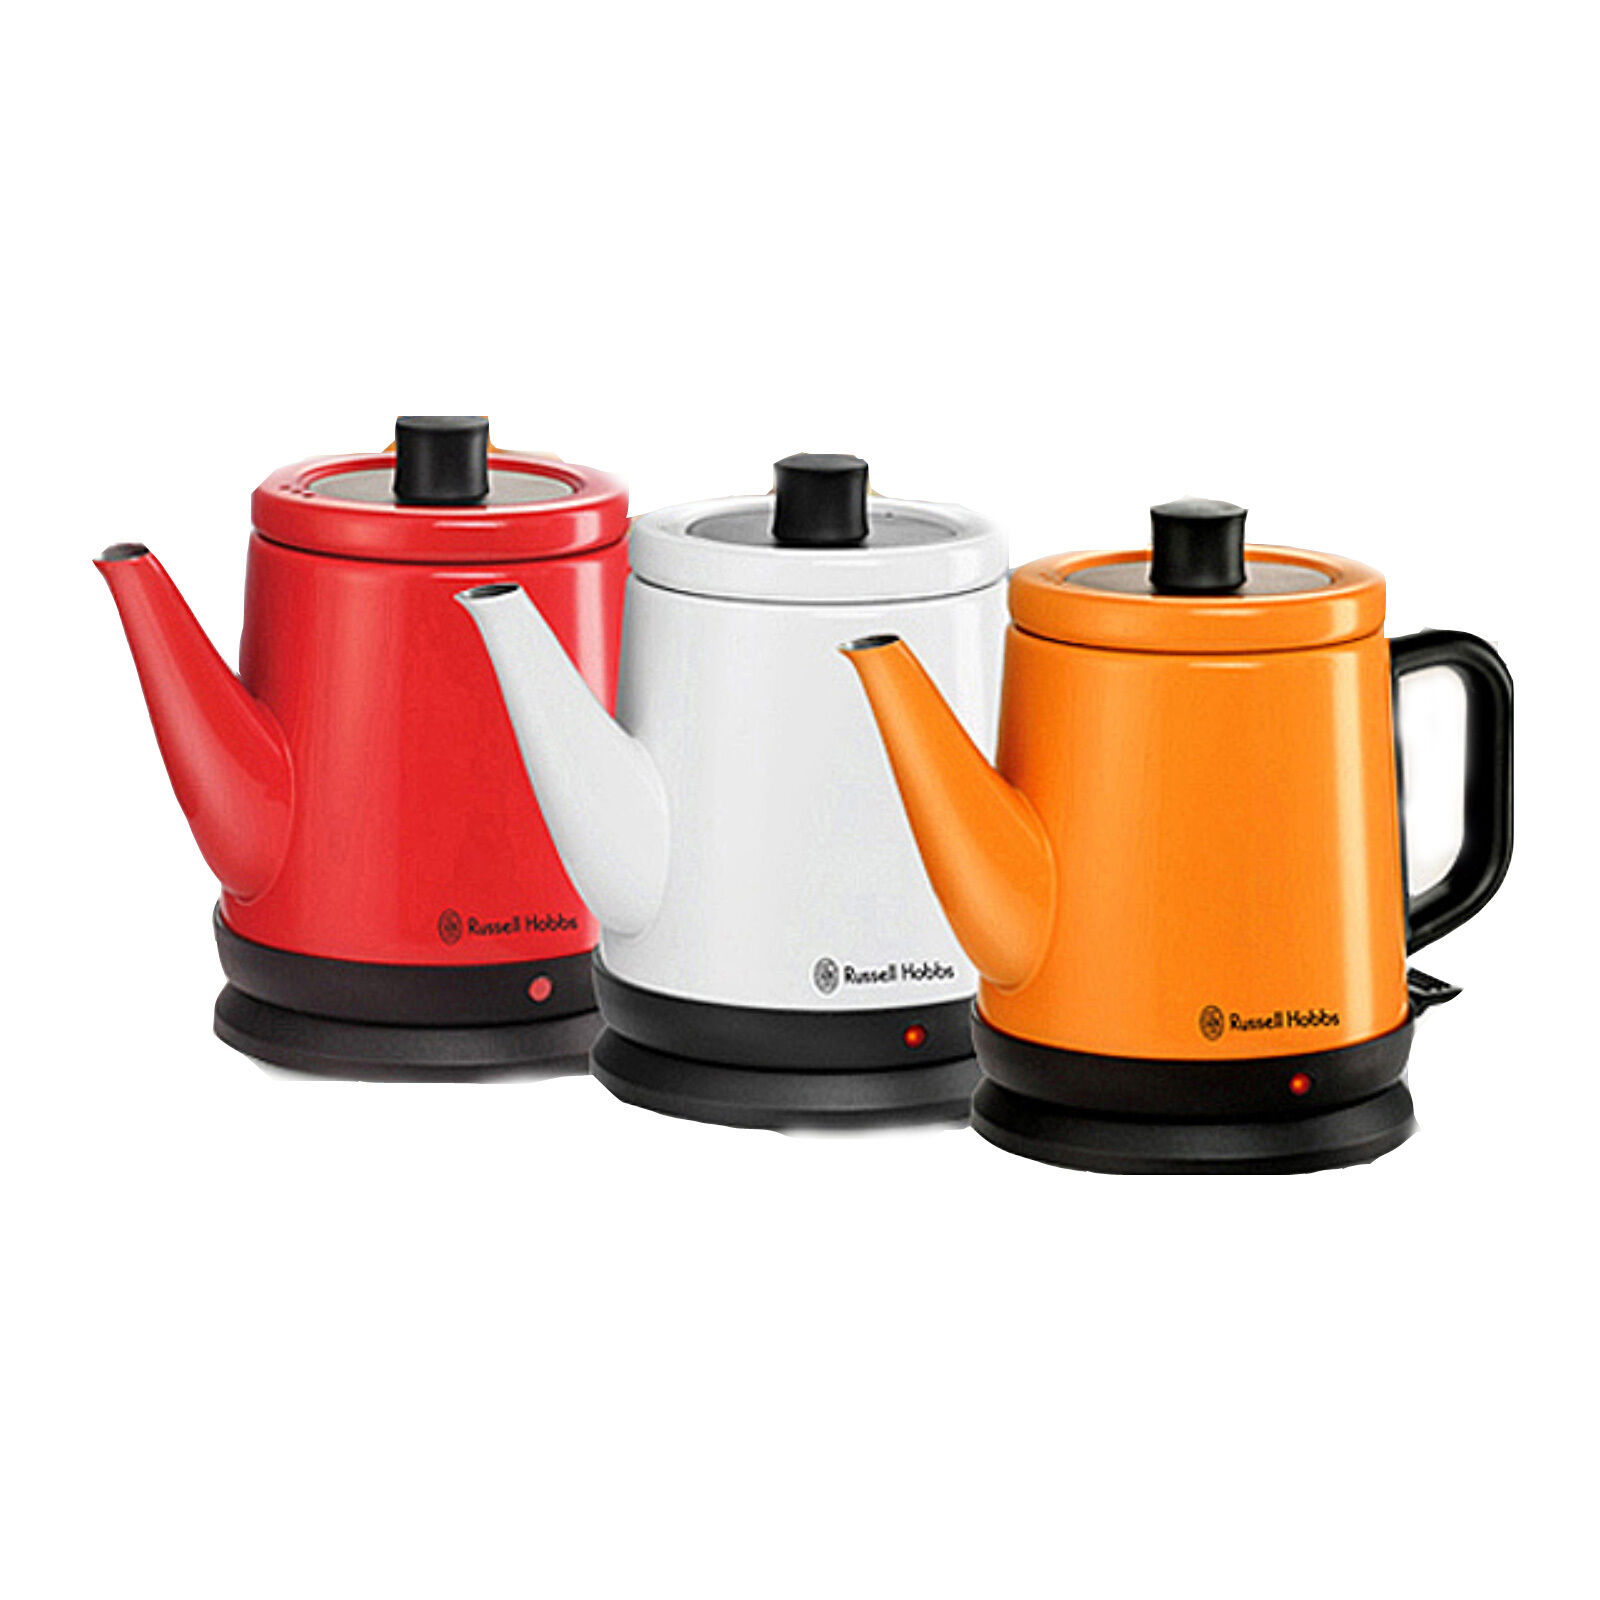 Russell Hobbs RH-080K Stainless Electronic Water Kettle 3color 0.8L 220V